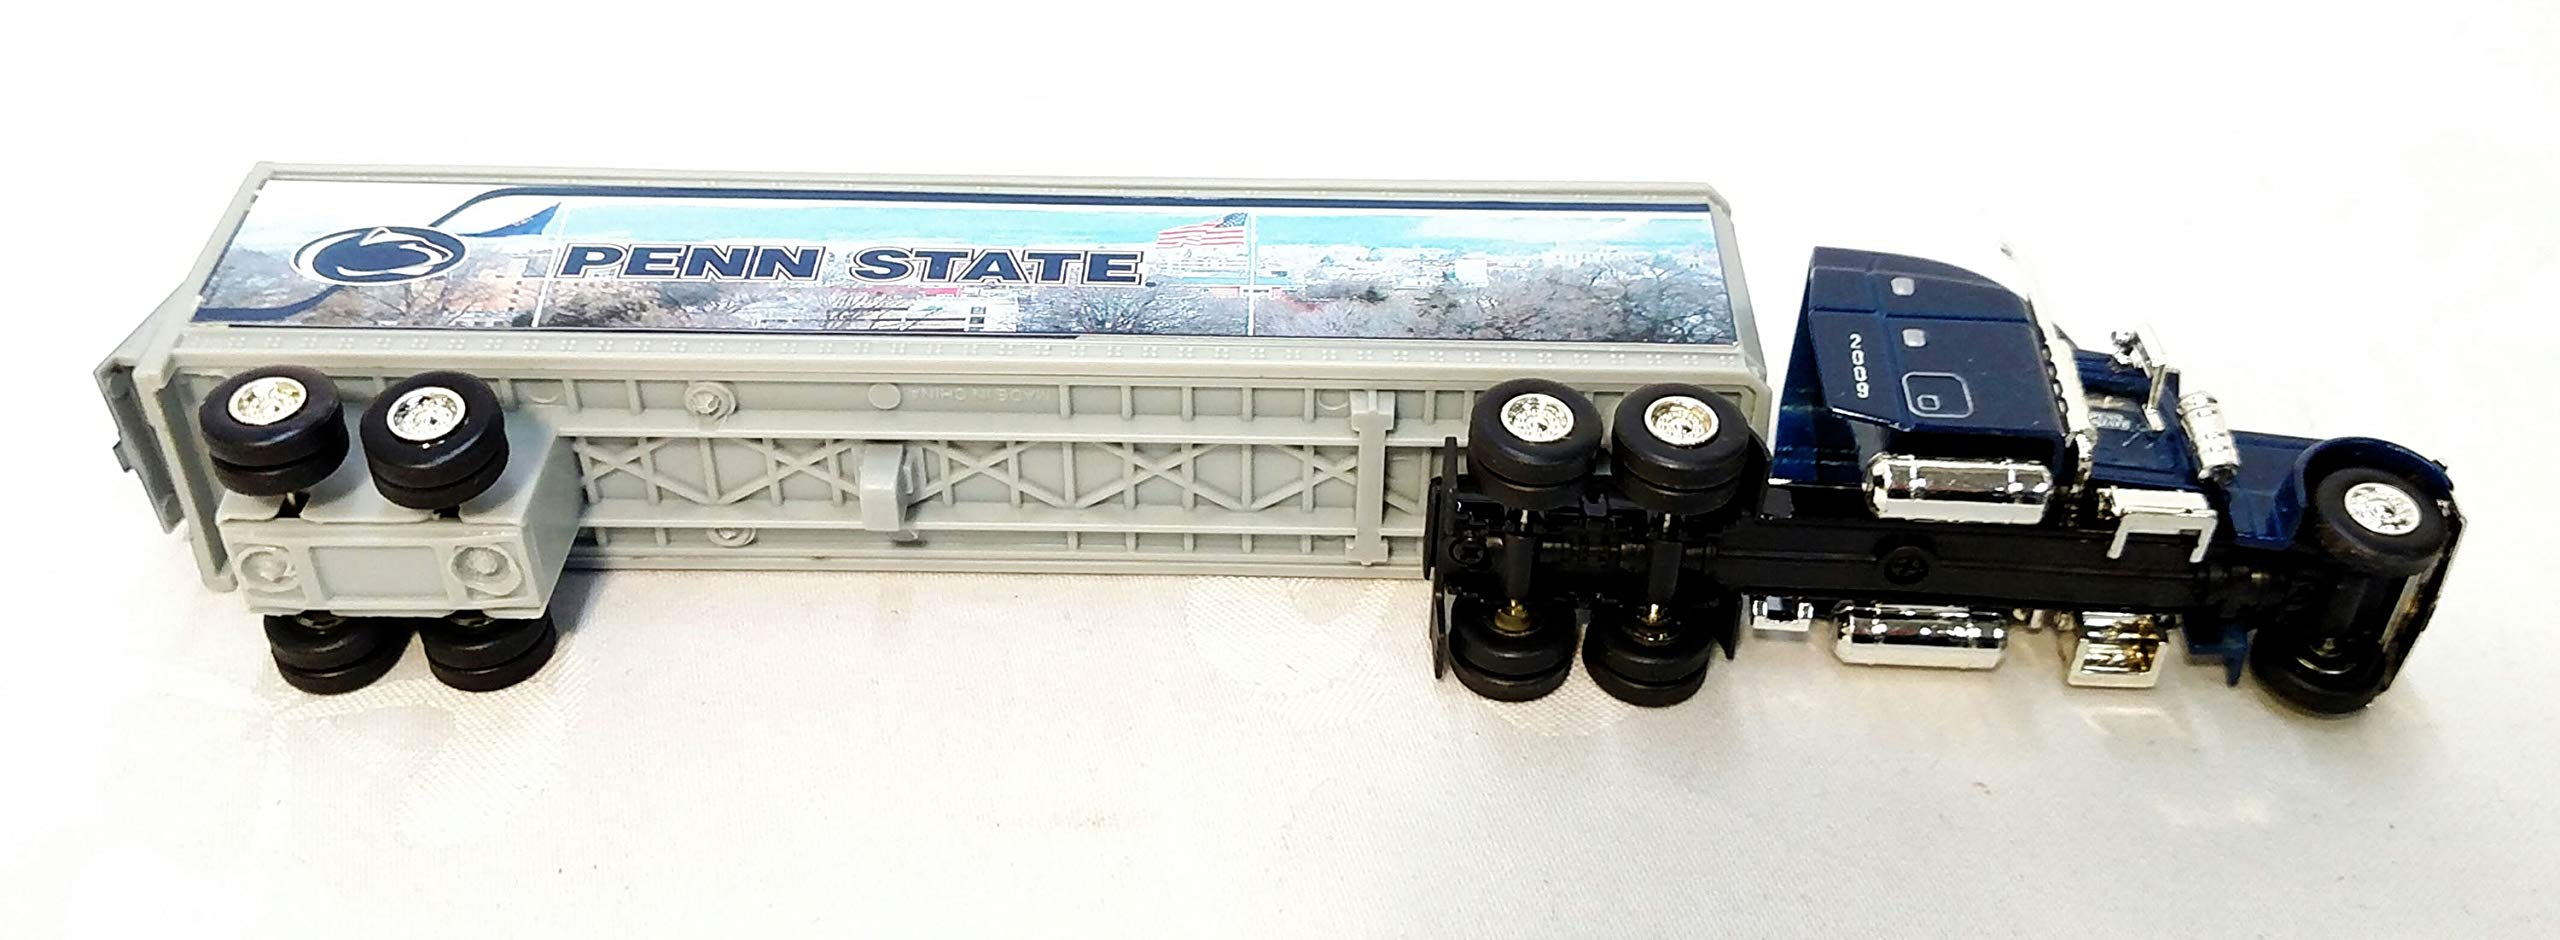 Penn State University Nittany Lions 2009 Limited Edition Die Cast Tractor Trailer